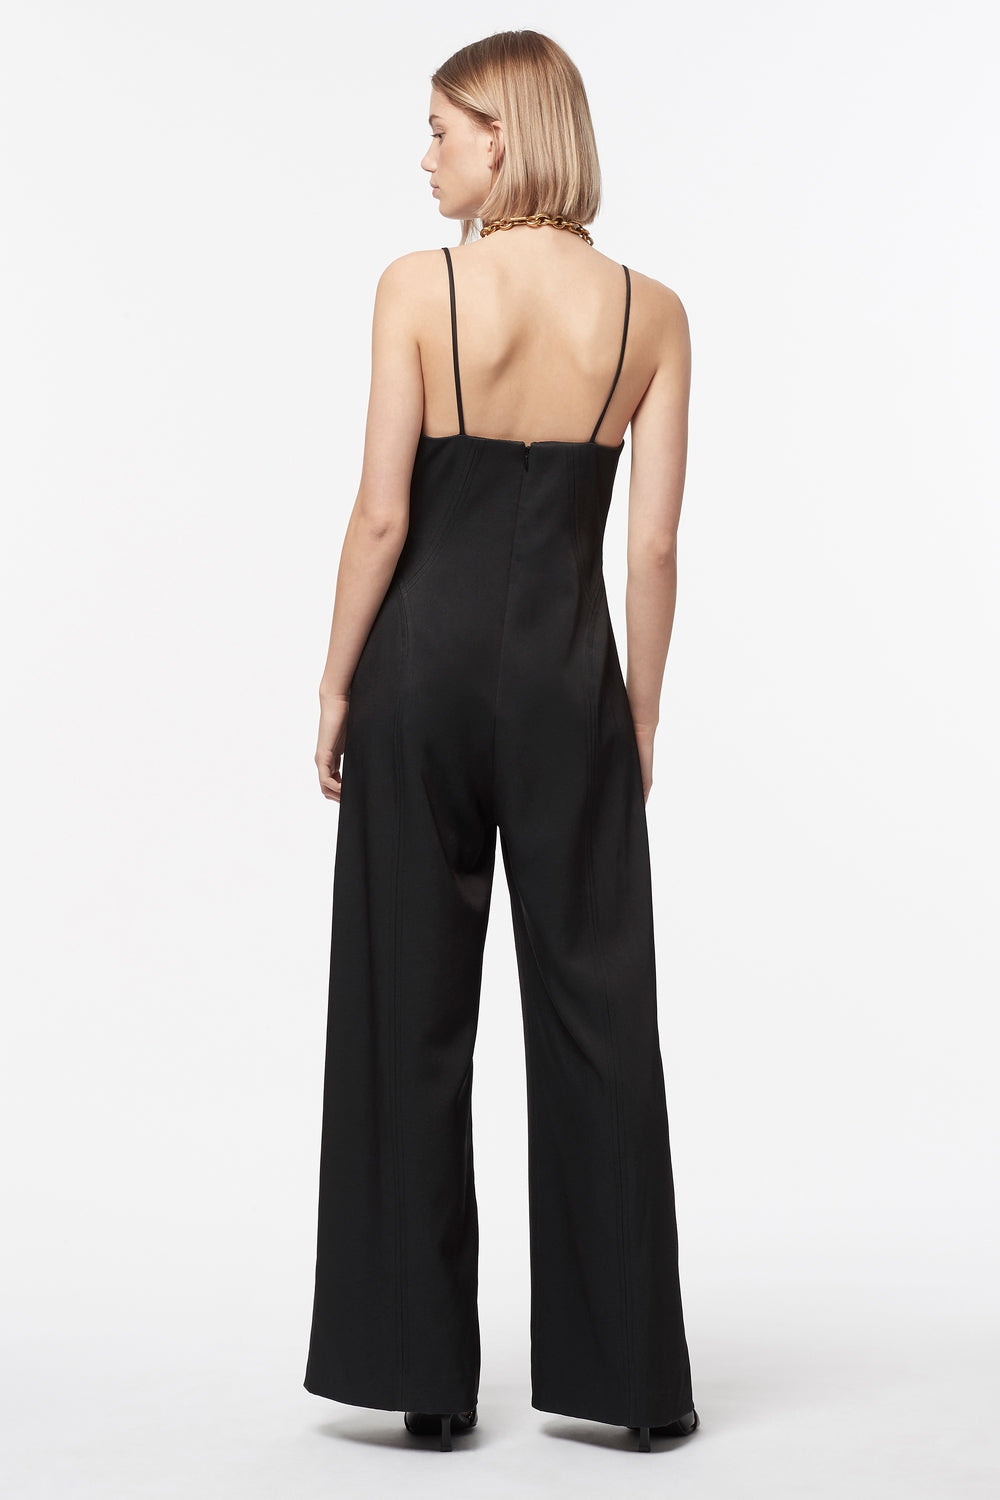 HIGH WIRE PANTSUIT